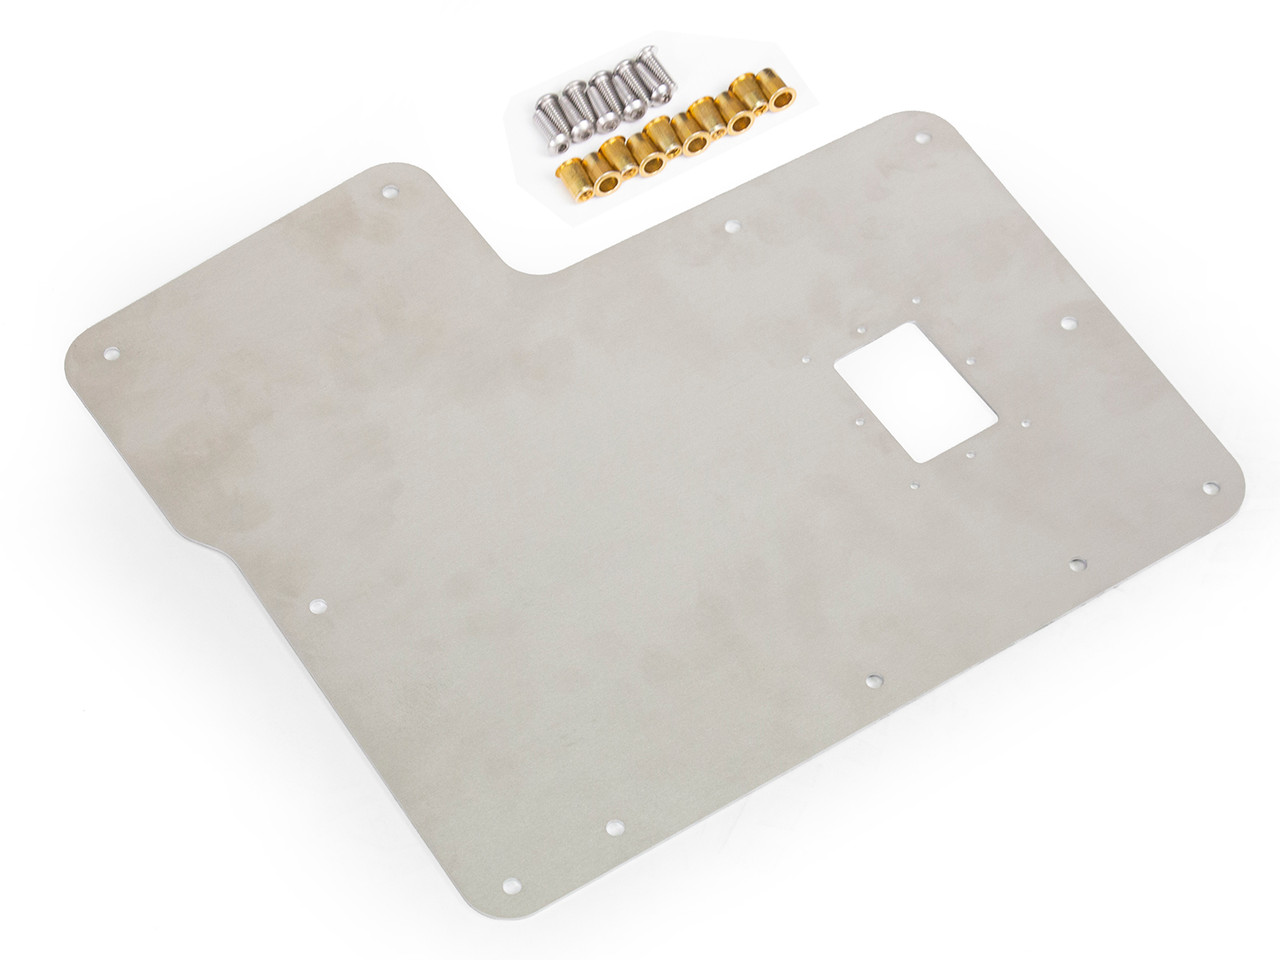 Transmission Tunnel Cover Plate for Jeep TJ & LJ